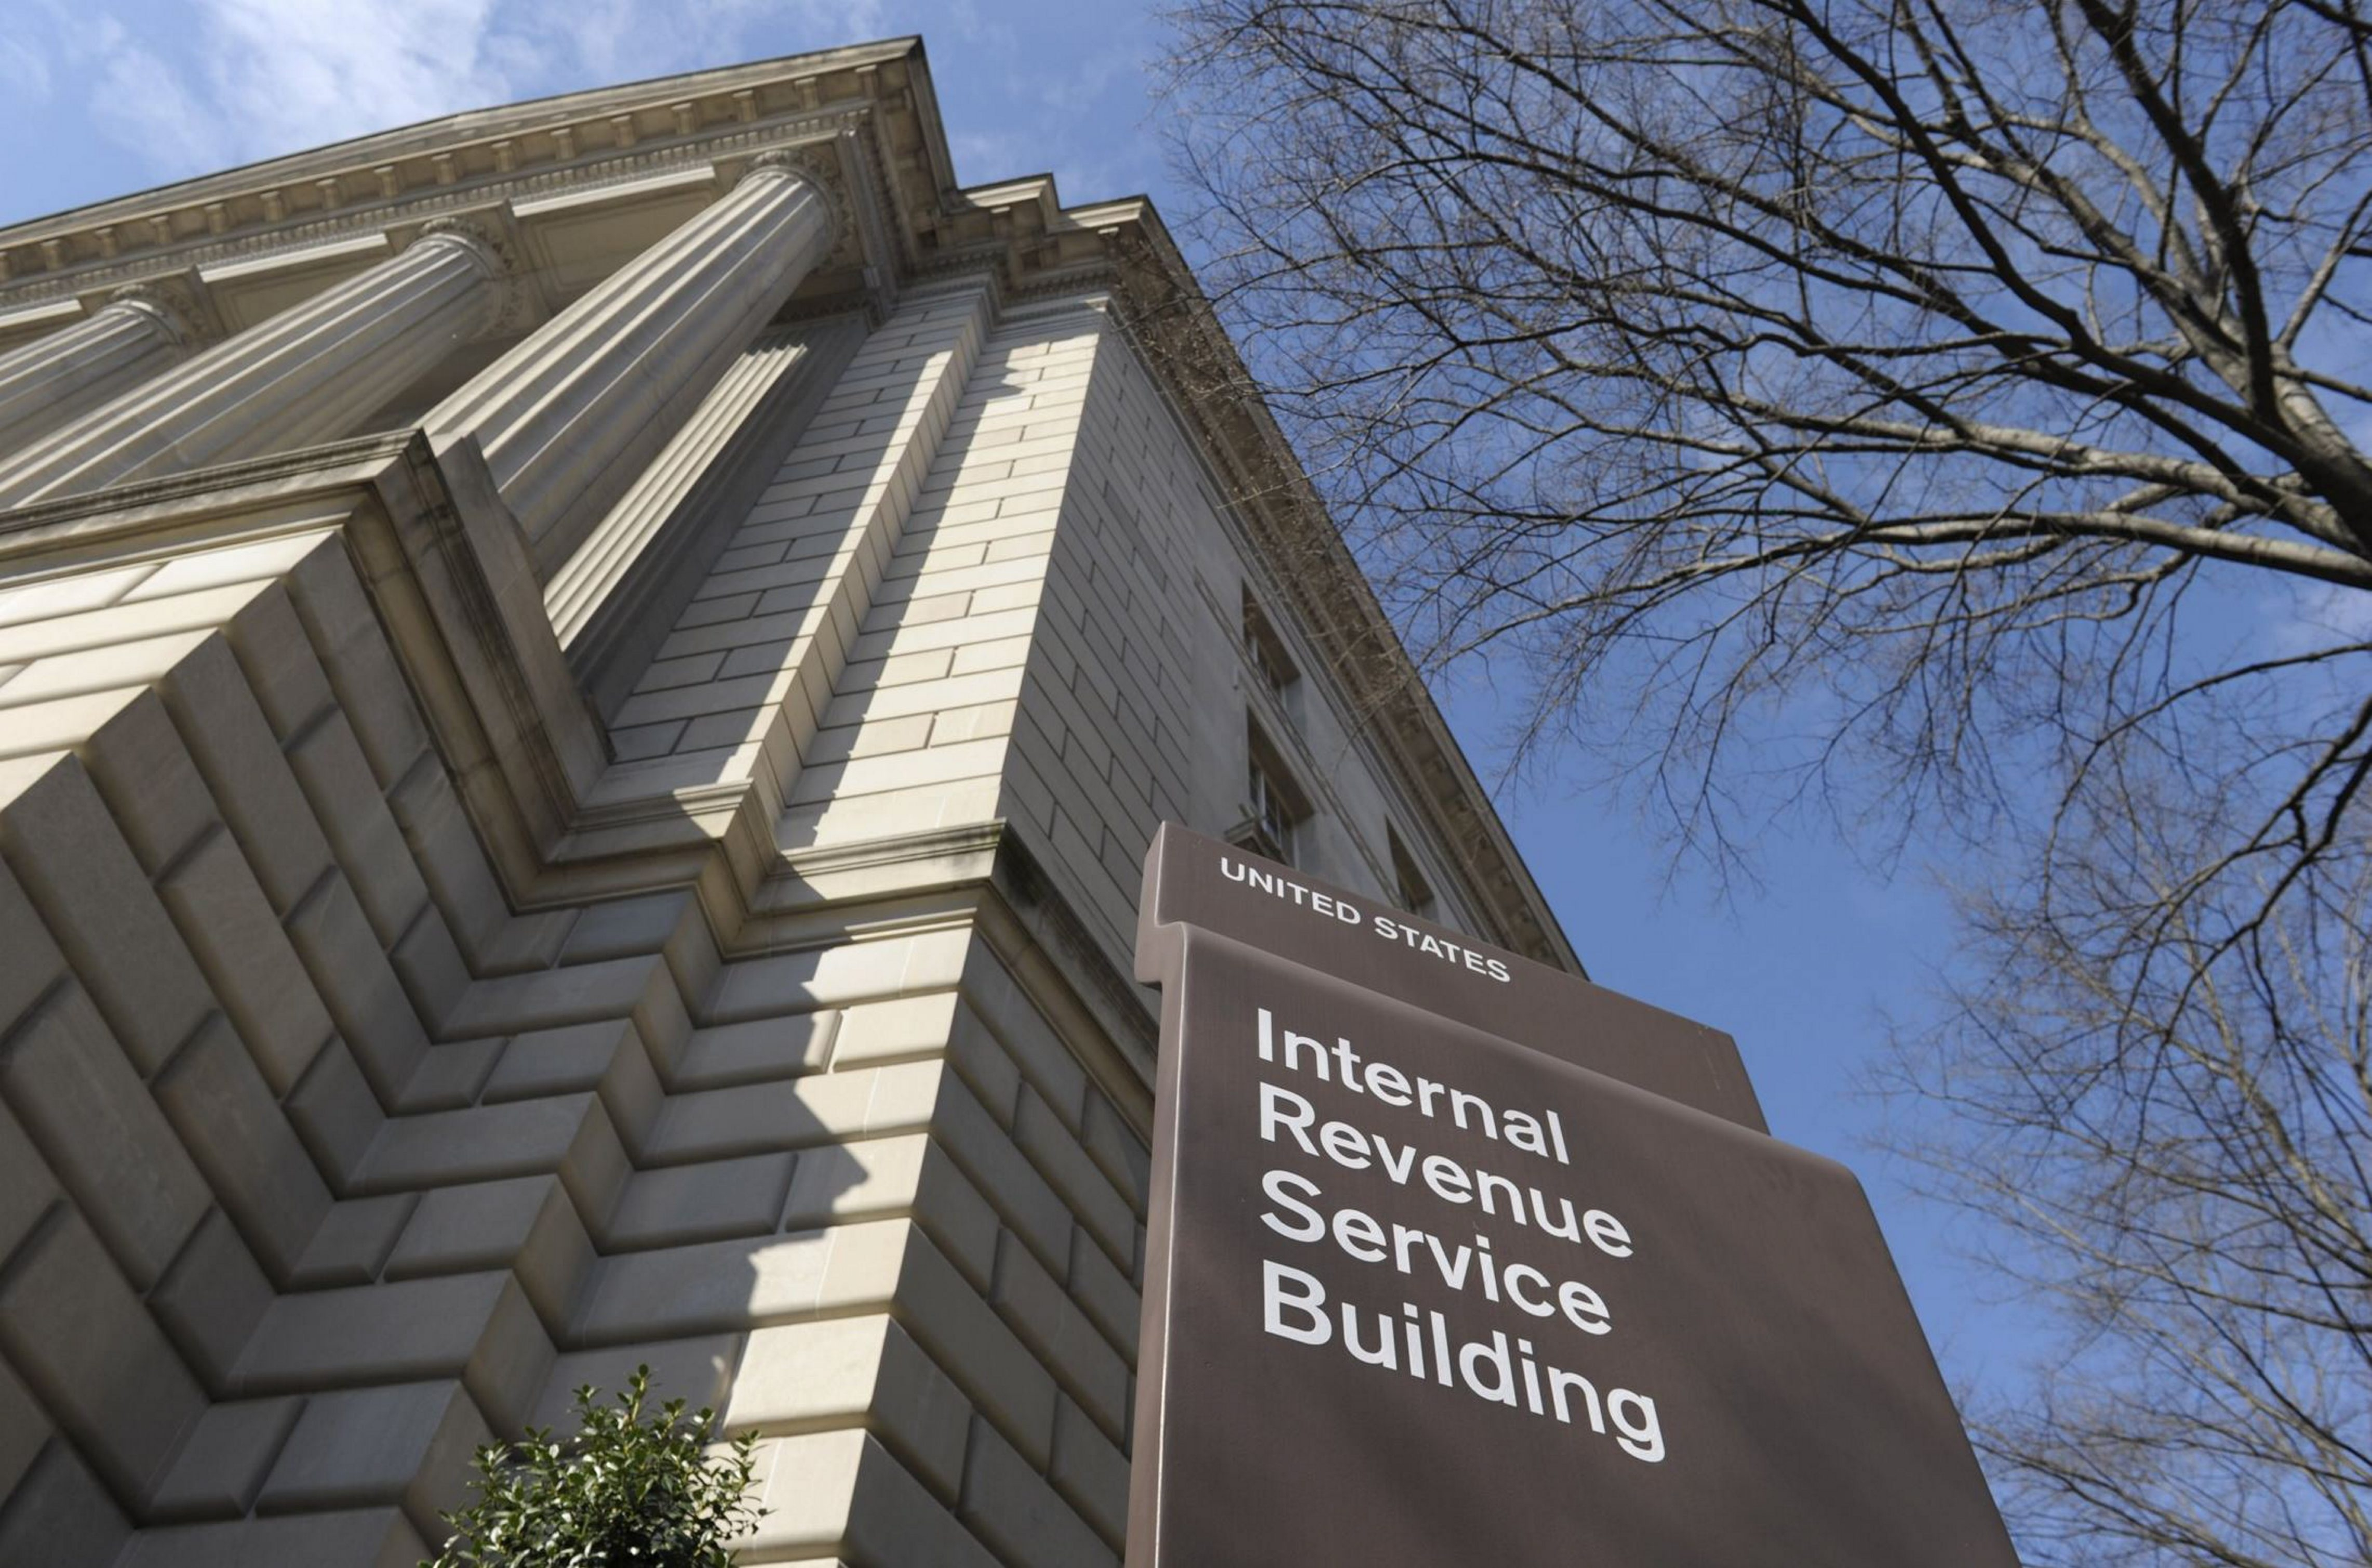 If the IRS is behind in collecting taxes, Congress should provide more resources to the agency. (AP photo)